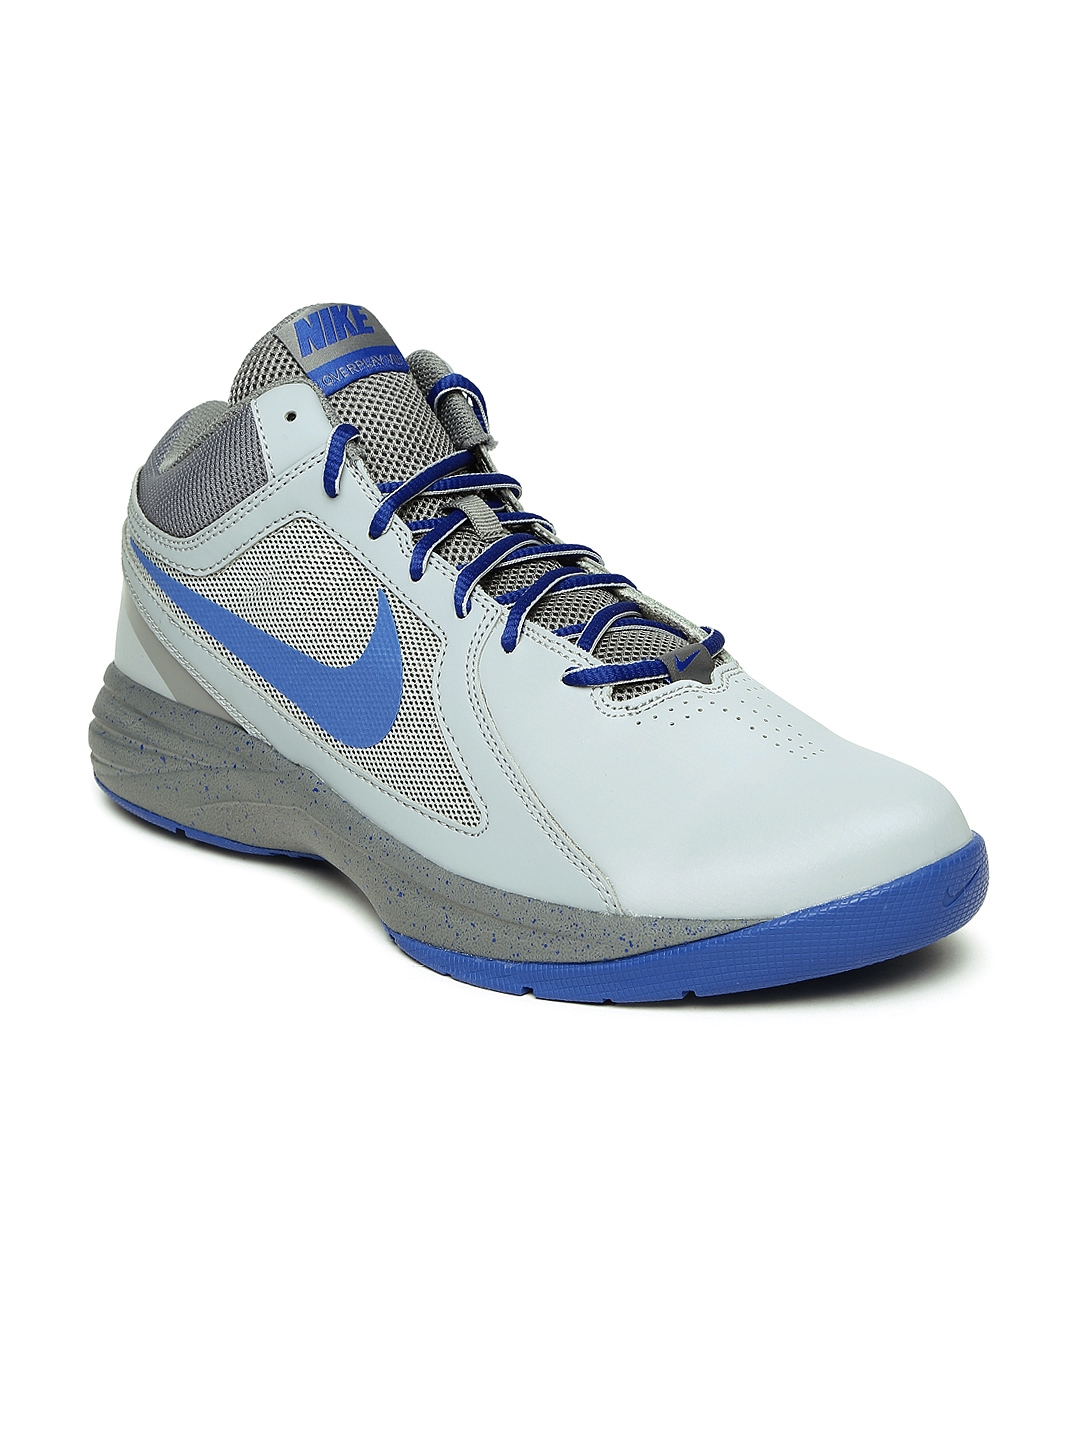 870e81638477 Buy Nike Men Grey Overplay VIII Leather Basketball Shoes - Sports ...